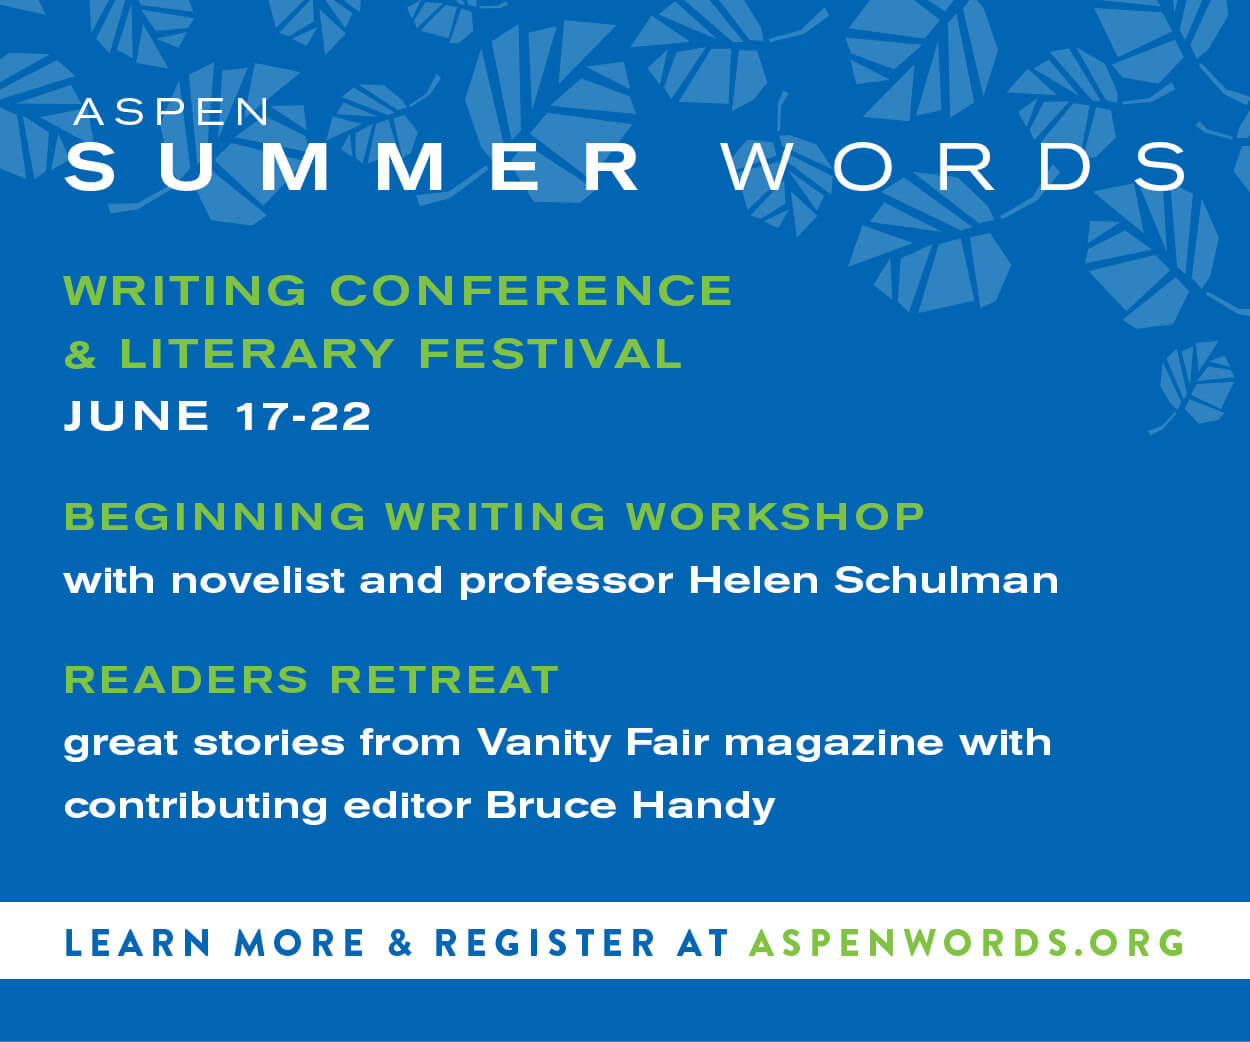 Aspen Words Summer Words Digital Advertising | Event Collateral Design by The Qurious Effect.